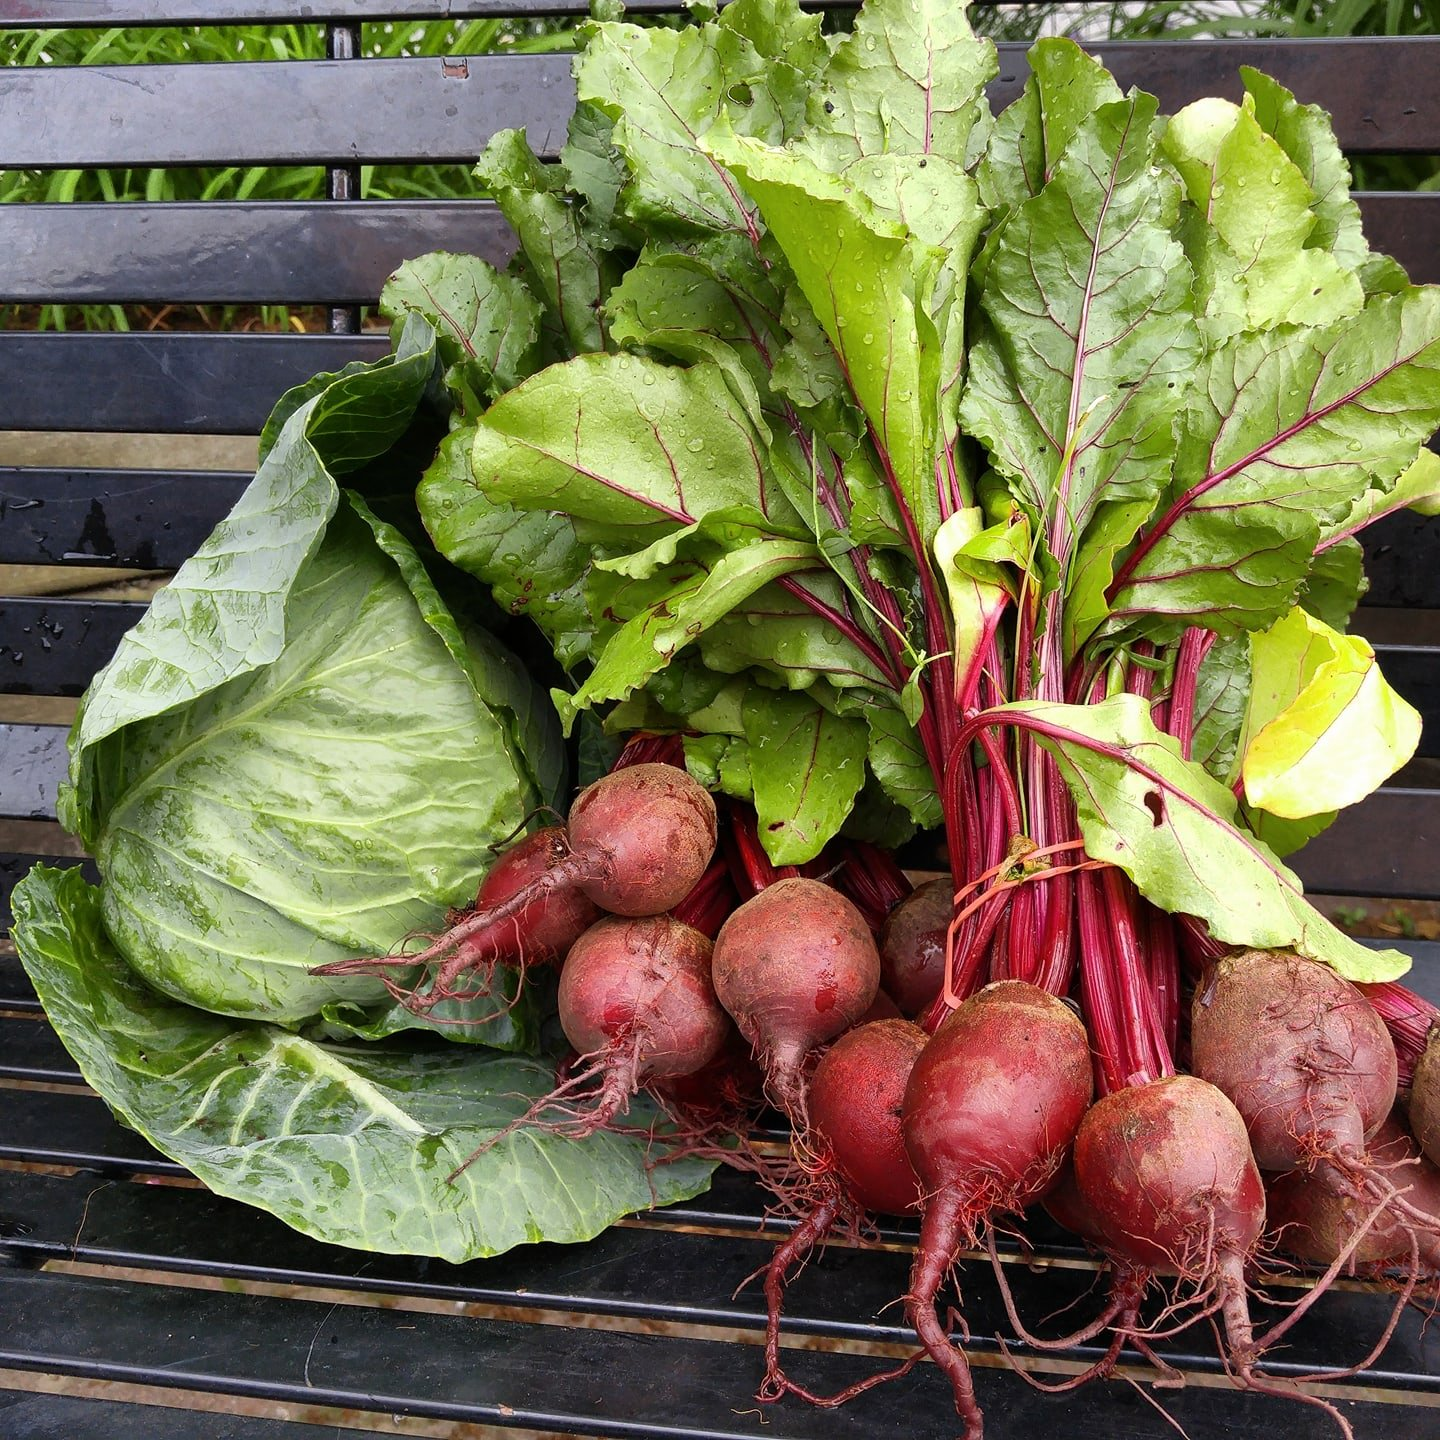 https://0901.nccdn.net/4_2/000/000/05c/c64/radish-cabbage.jpg